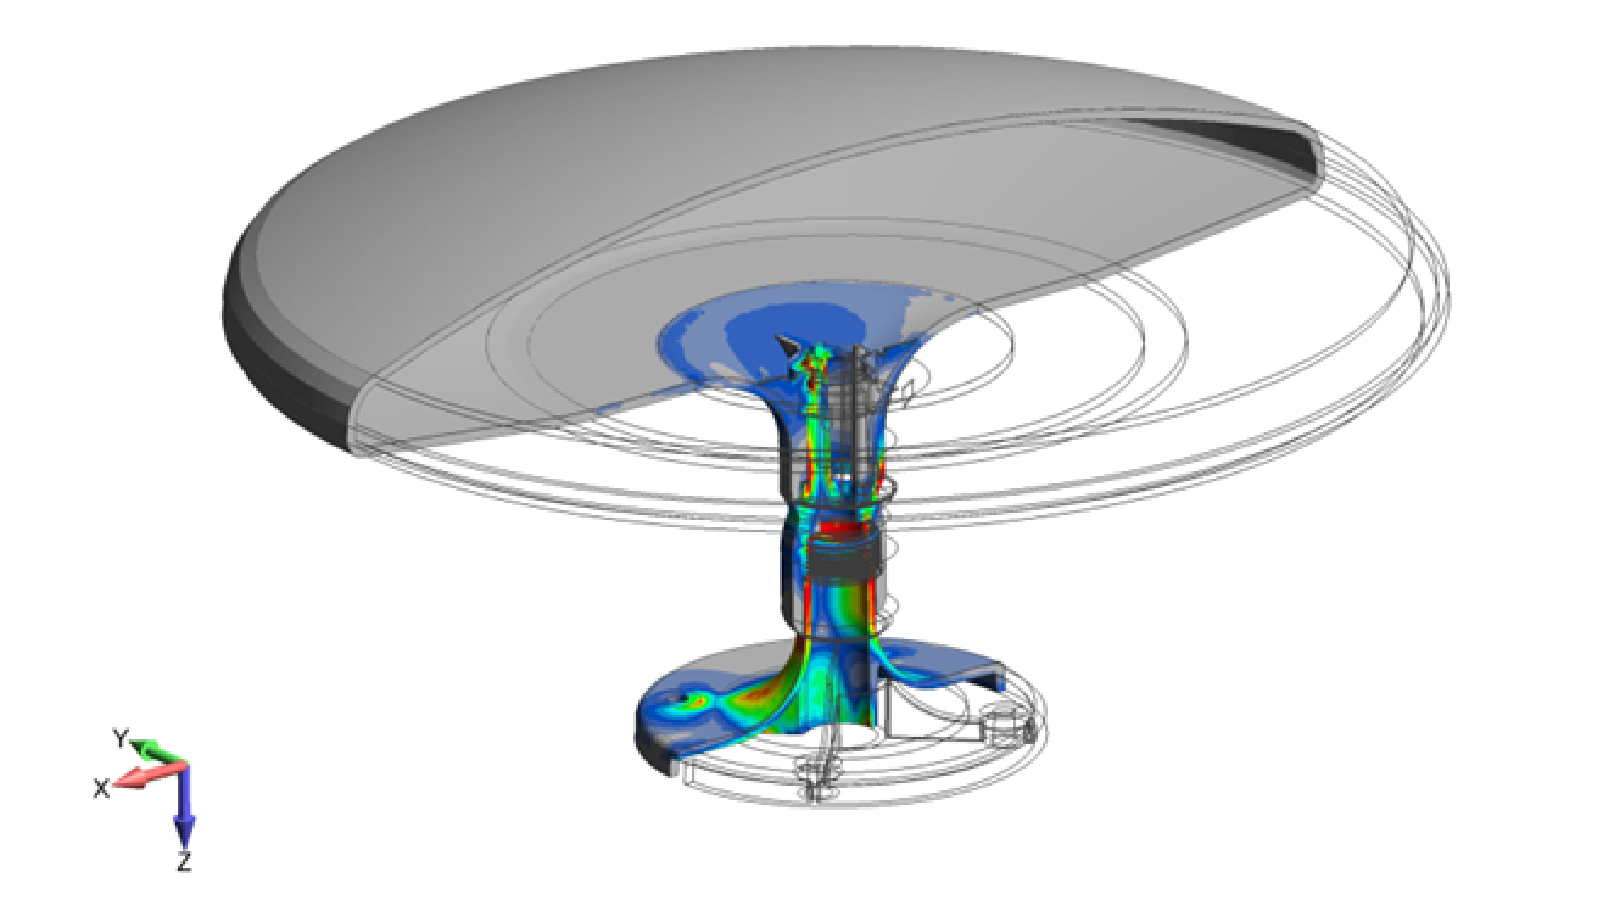 Stress contour plot based on CFD generated pressure loads